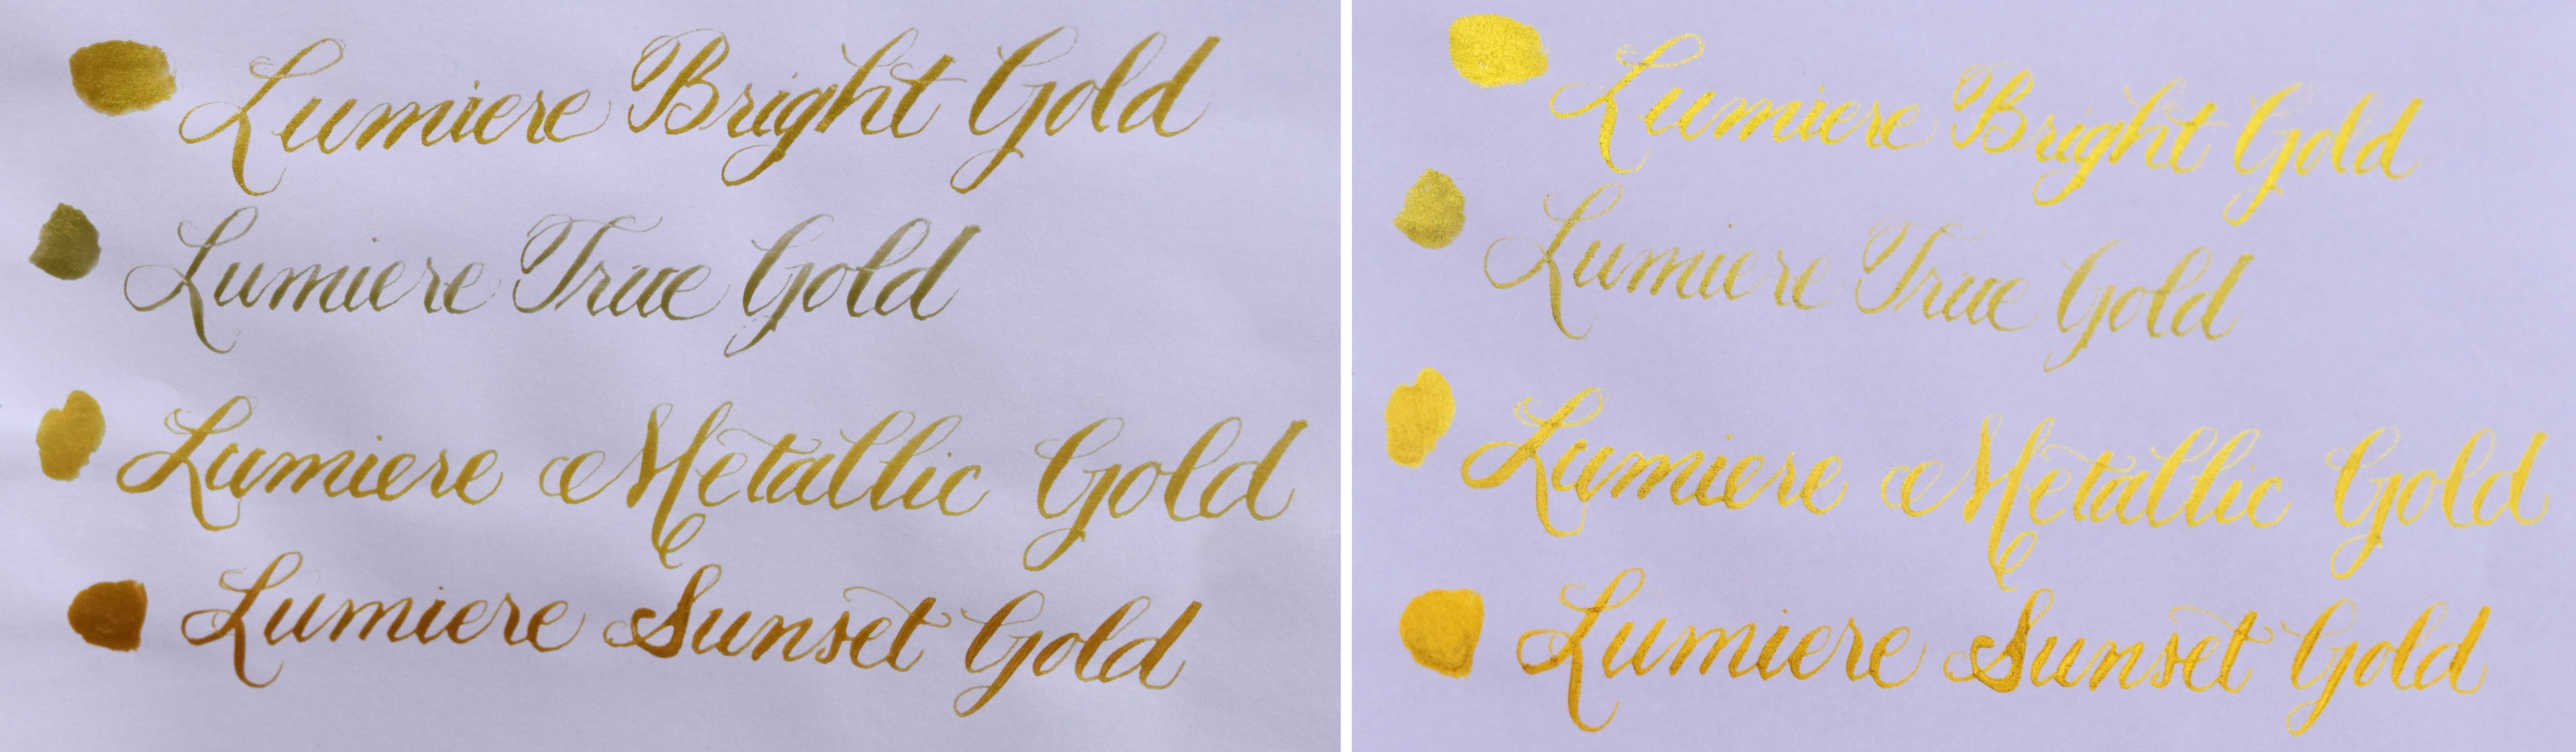 gold side by side5